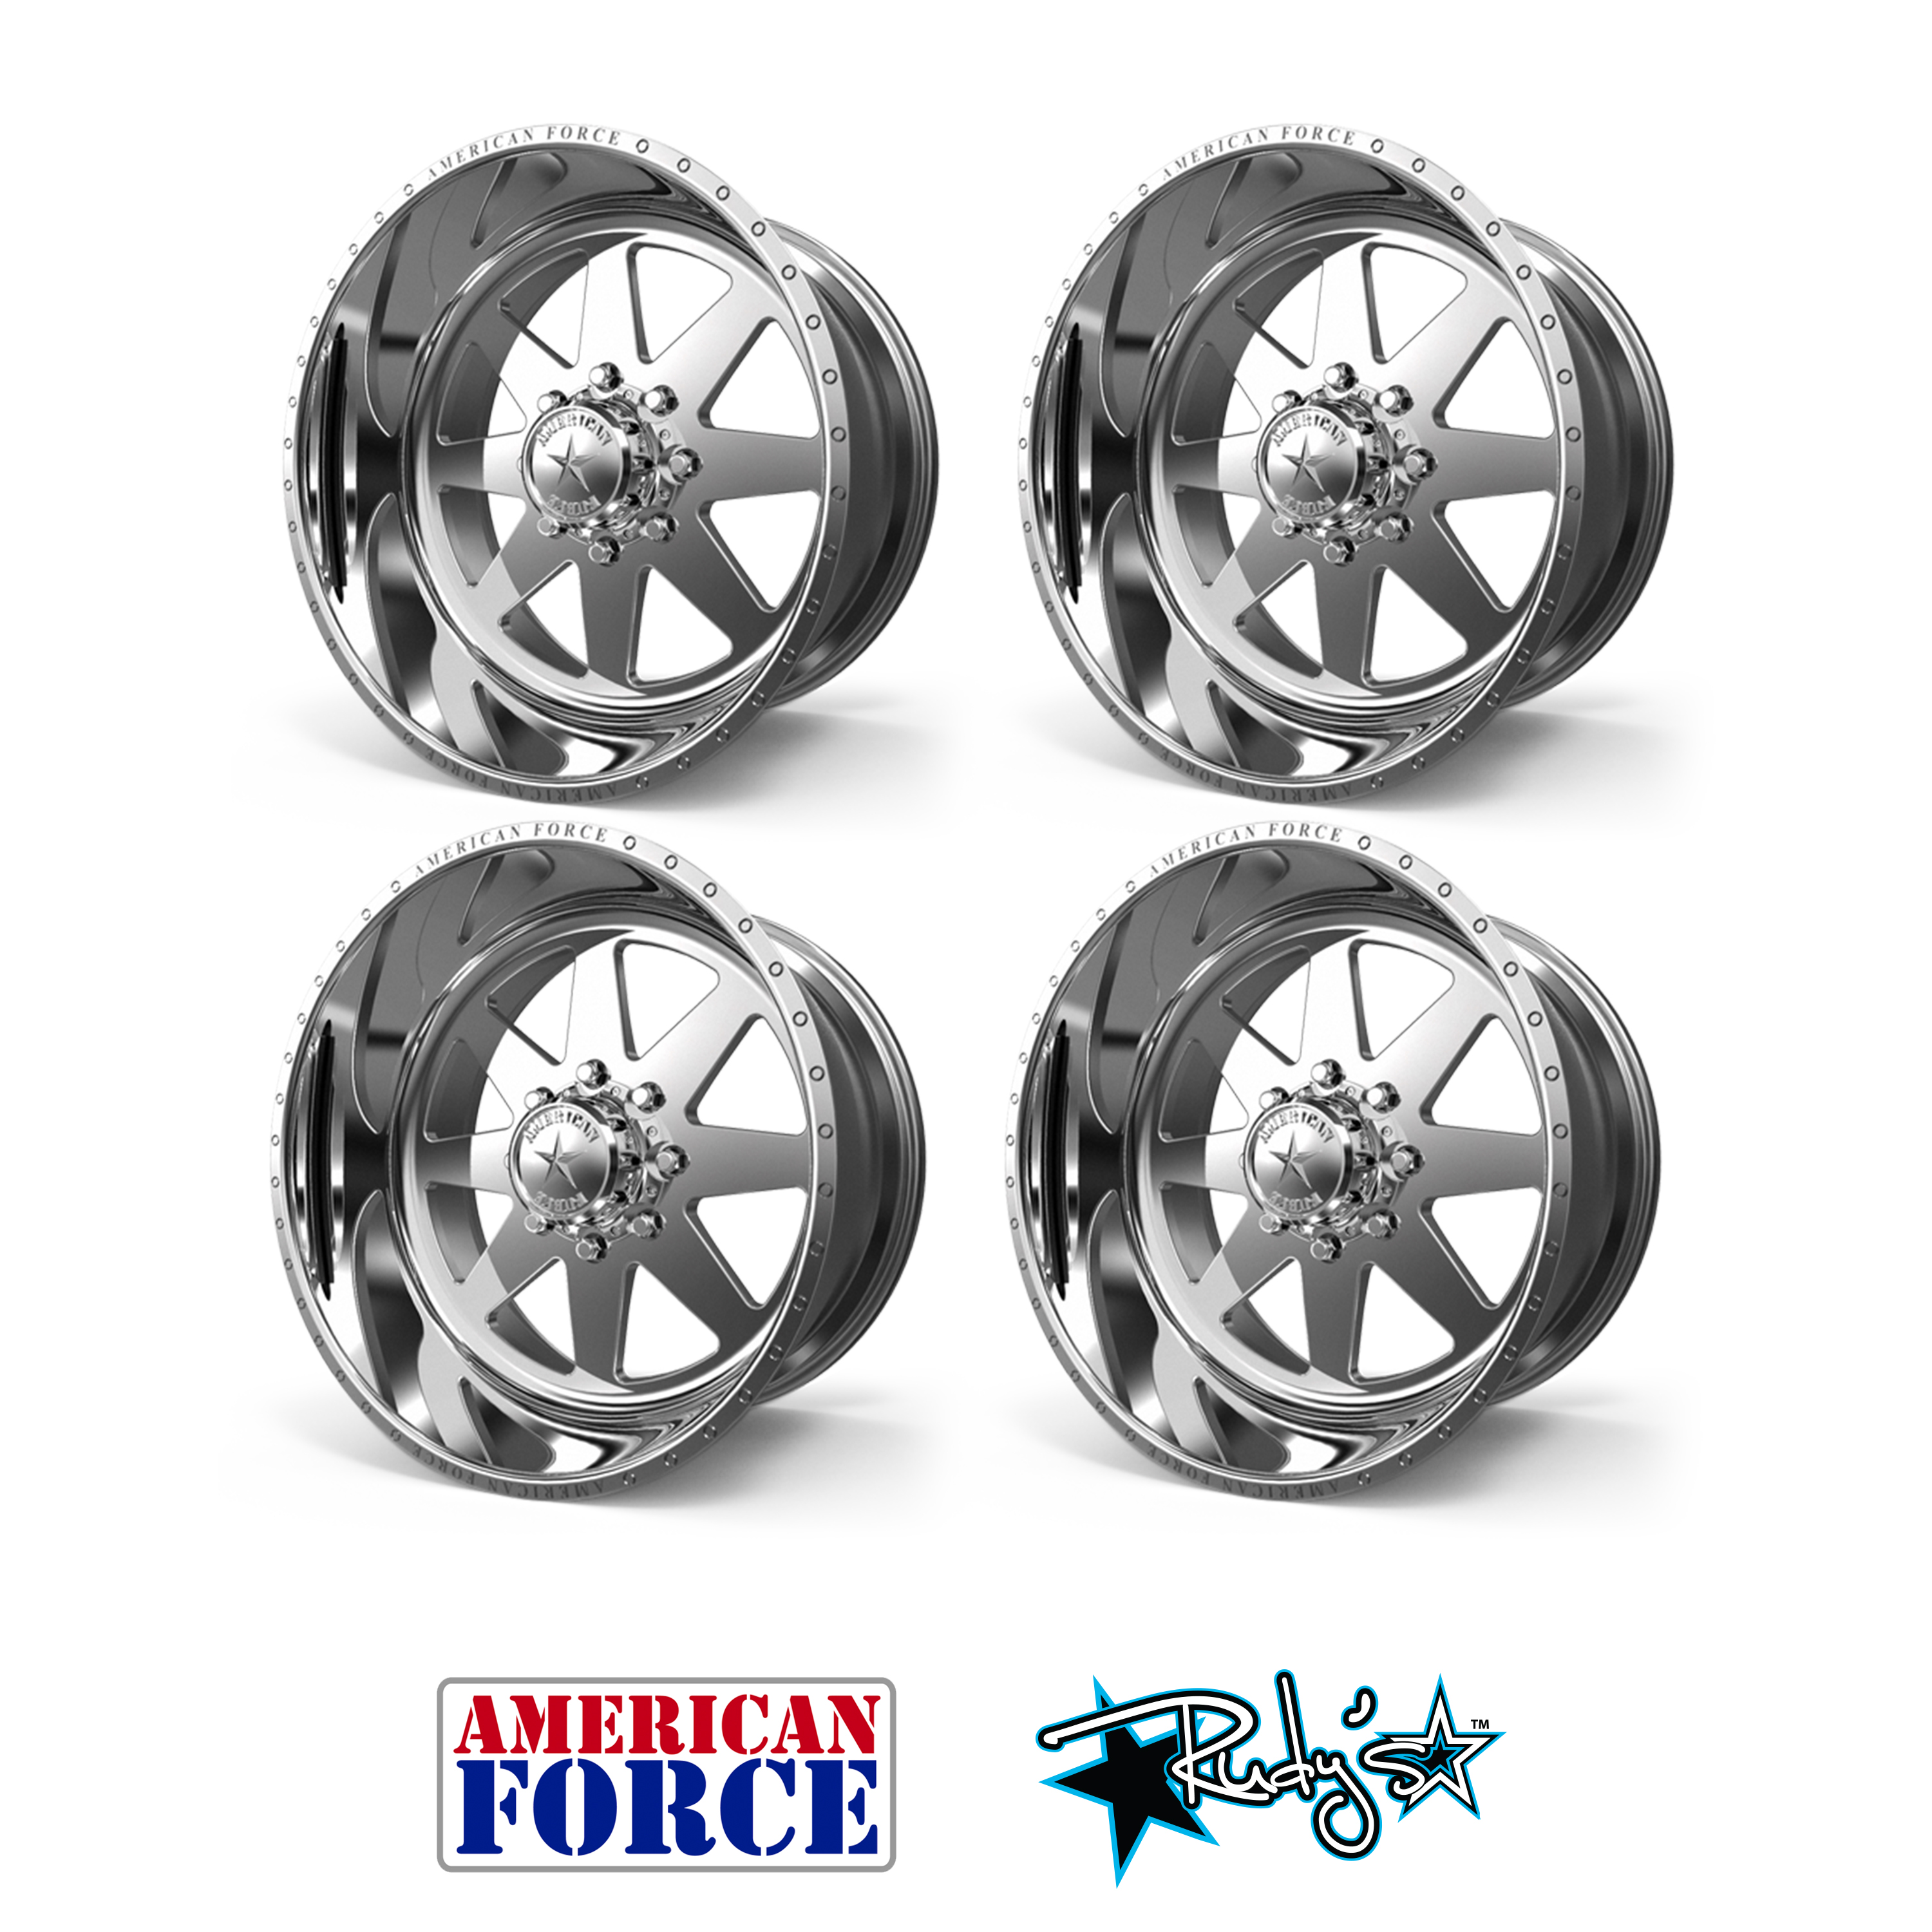 4 20x9 American Force Polished Independence Wheels For Chevy Gmc Ford Dodge Ebay